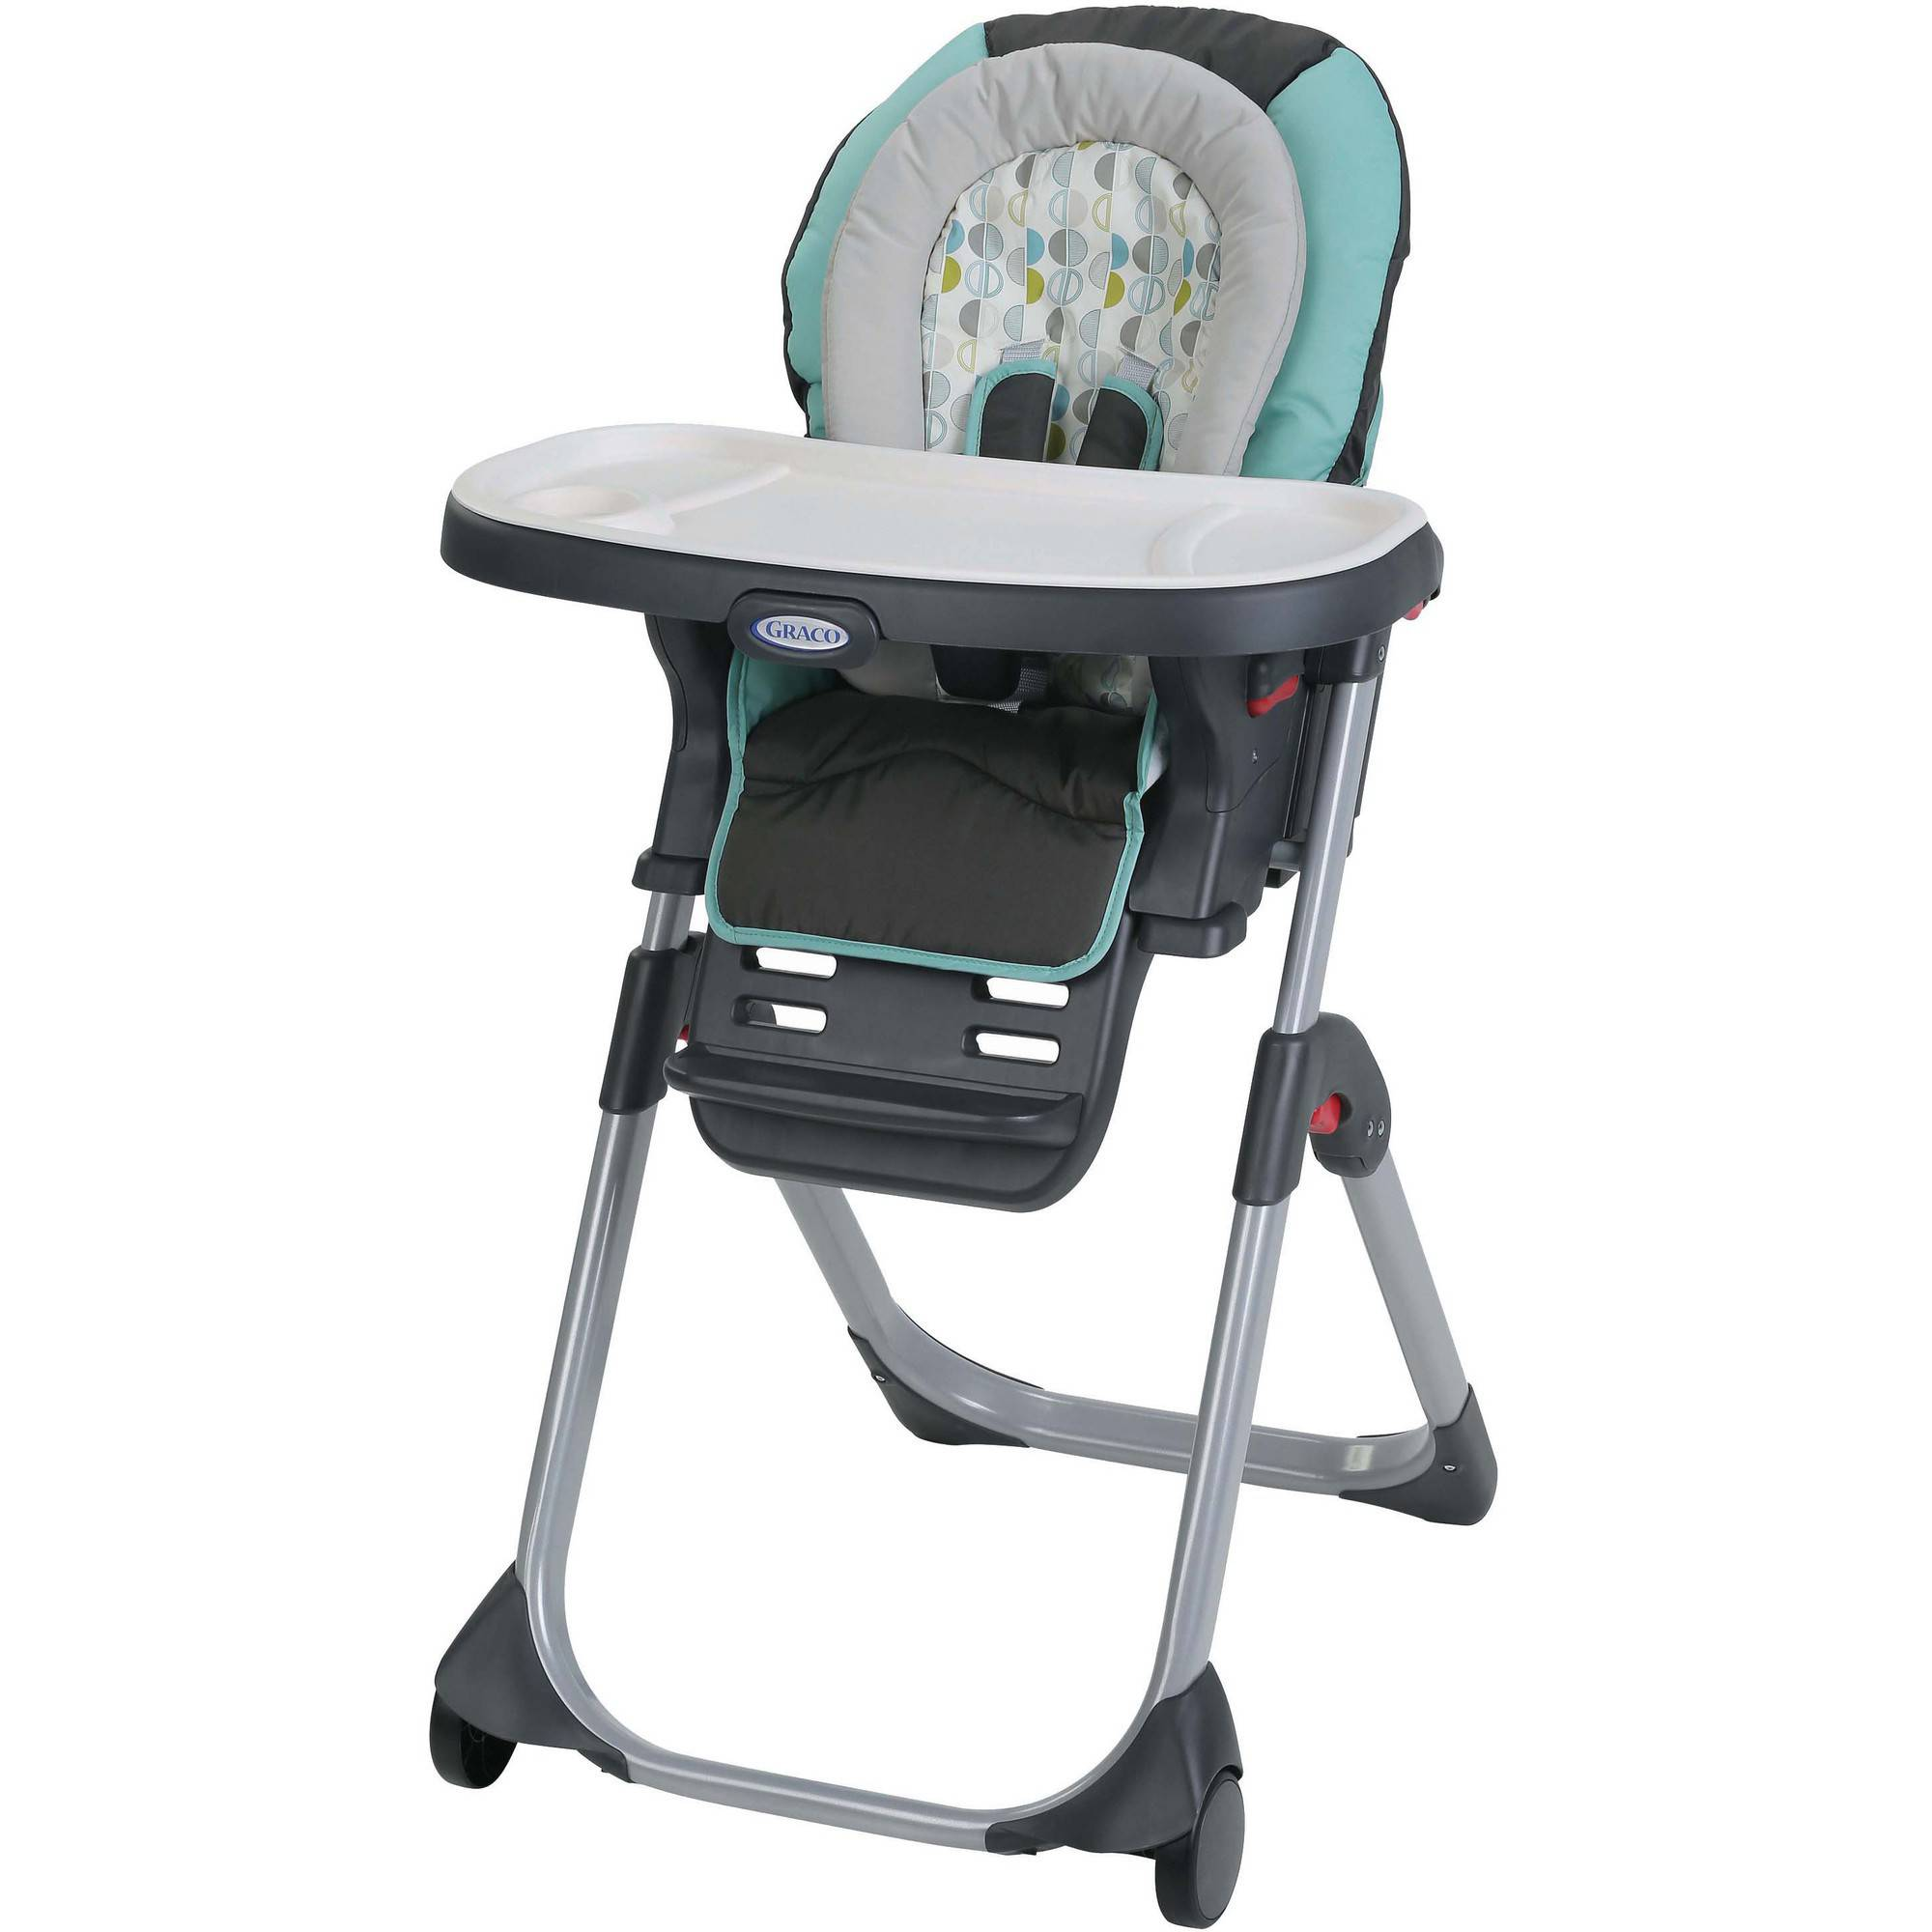 graco duodiner lx high chair library ladder australia 3 in 1 convertible groove walmart com